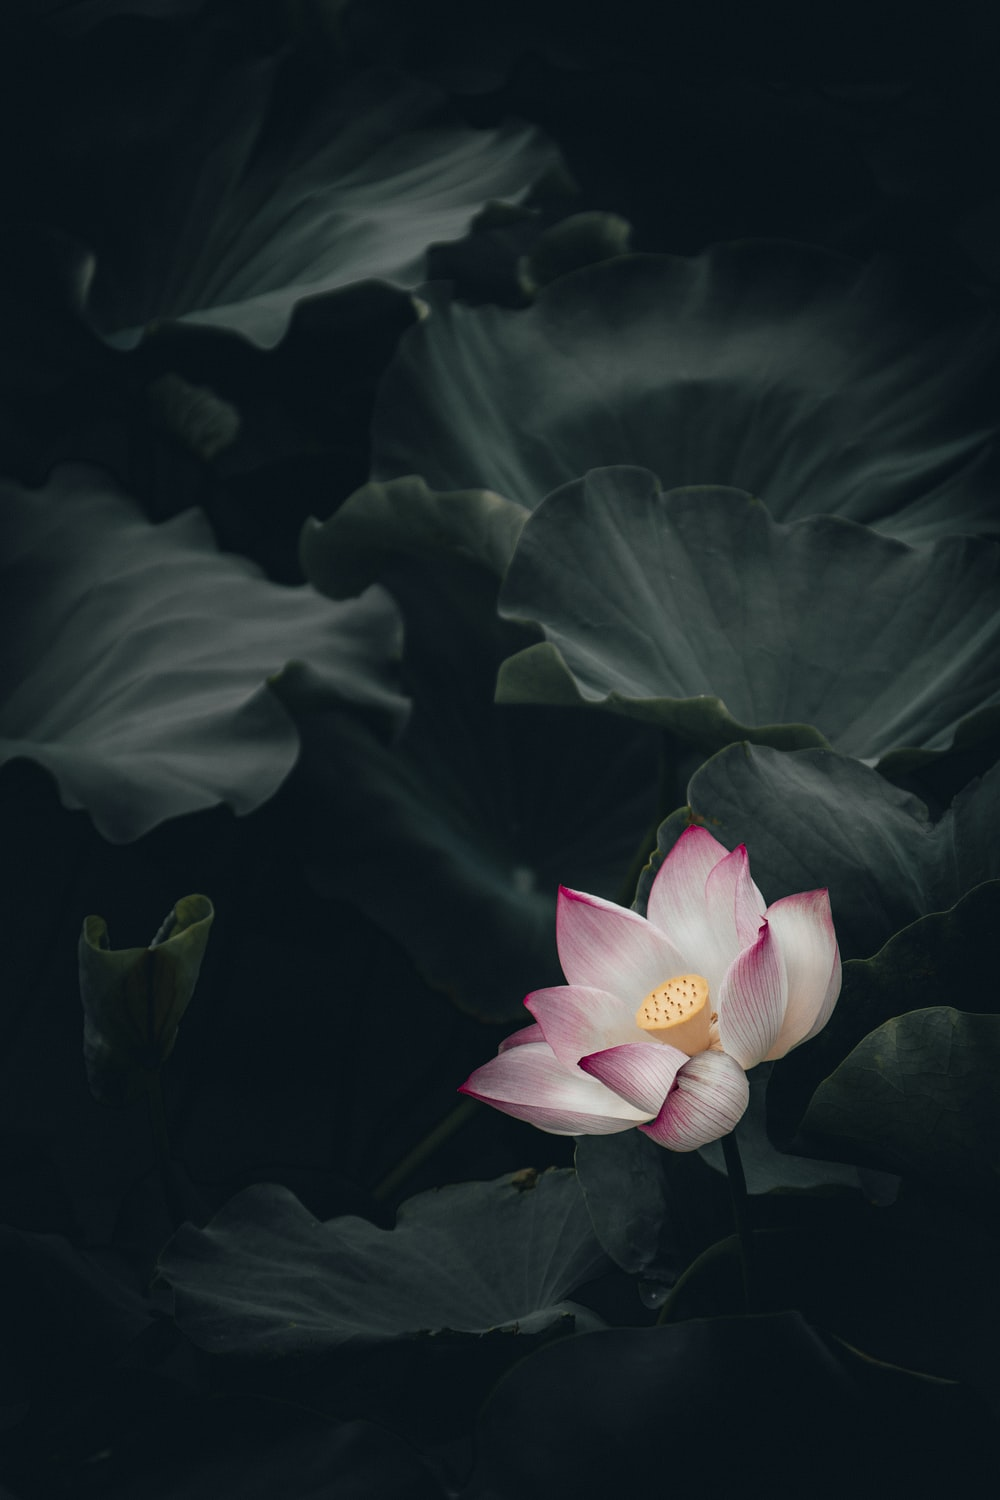 27 lotus pictures download free images on unsplash close up photo of pink and white petaled flower izmirmasajfo